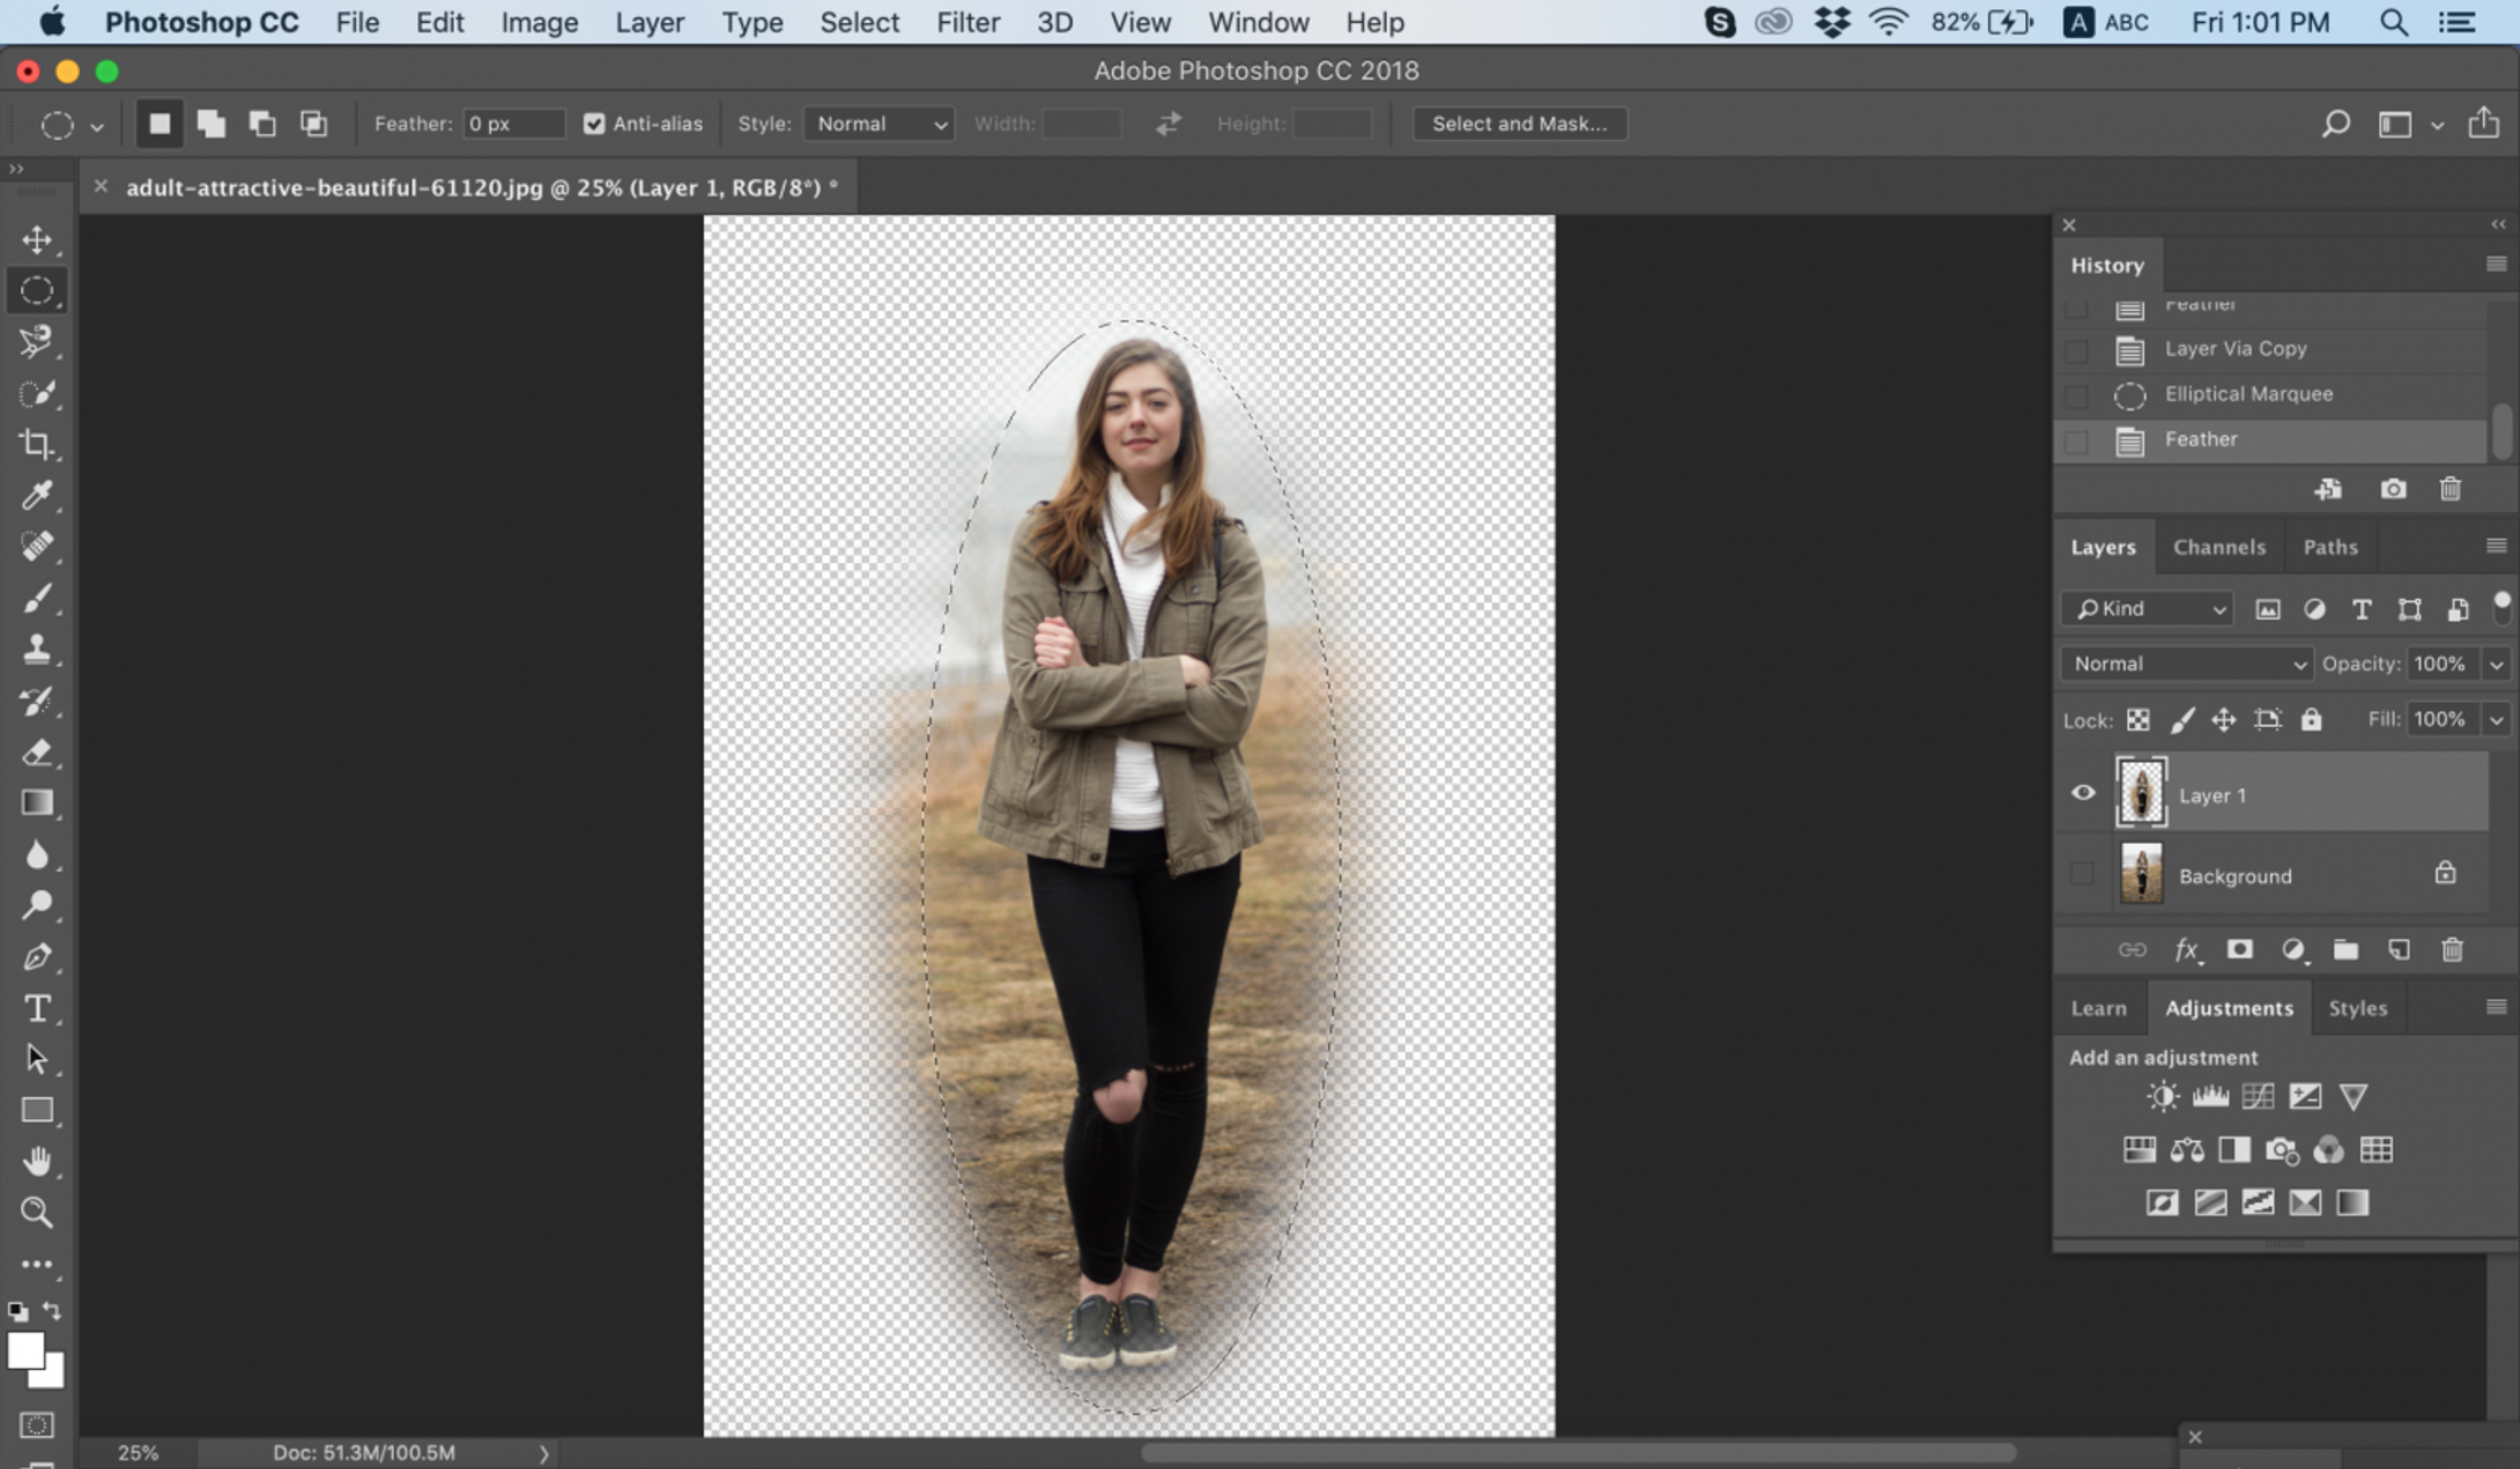 photoshop elements how to smooth edges